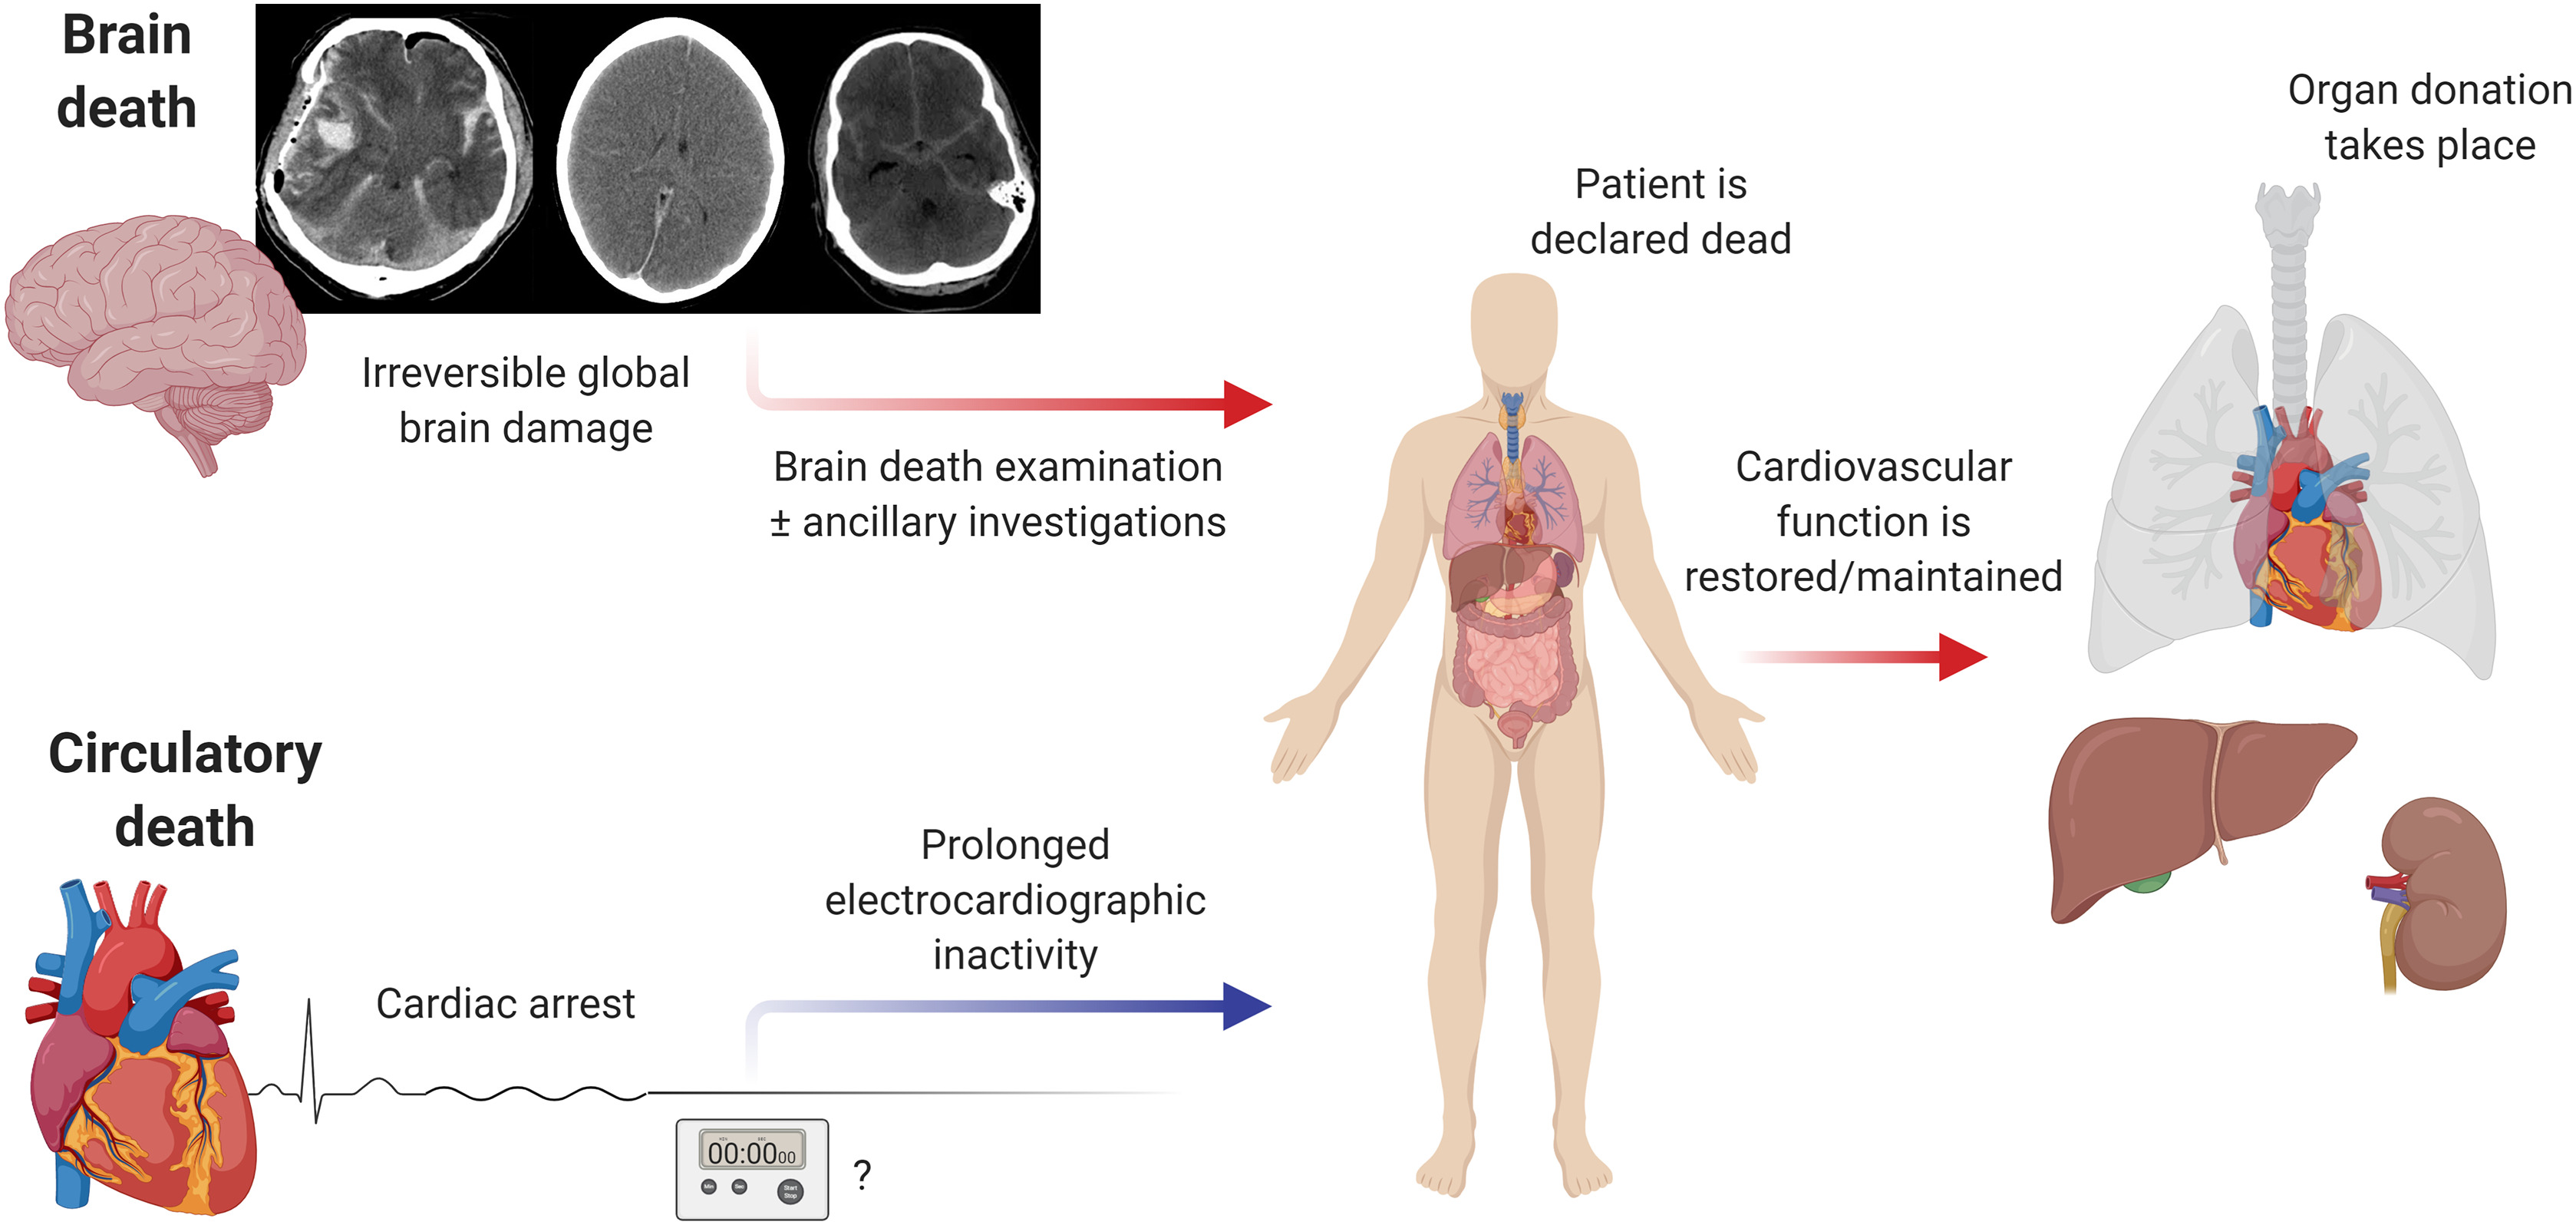 Spiegel De4 Supplemental Materials For Public Opinion And Legislations Related To Brain Death, Circulatory Death And Organ Donation - Journal Of The Neurological Sciences